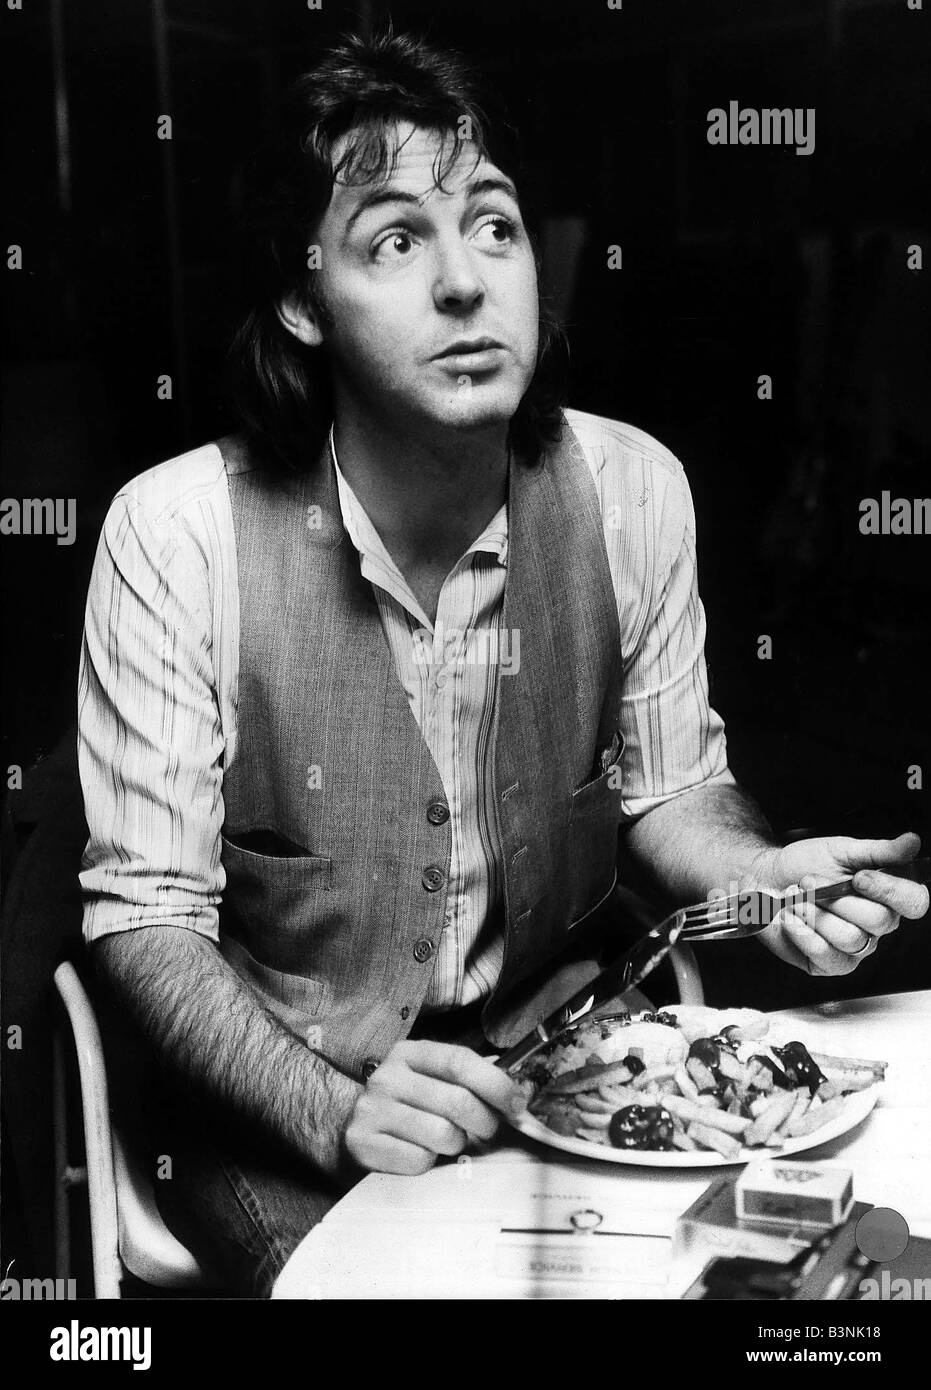 Paul McCartney Former Singer With The Beatles Eating Fish And Chips November 1977